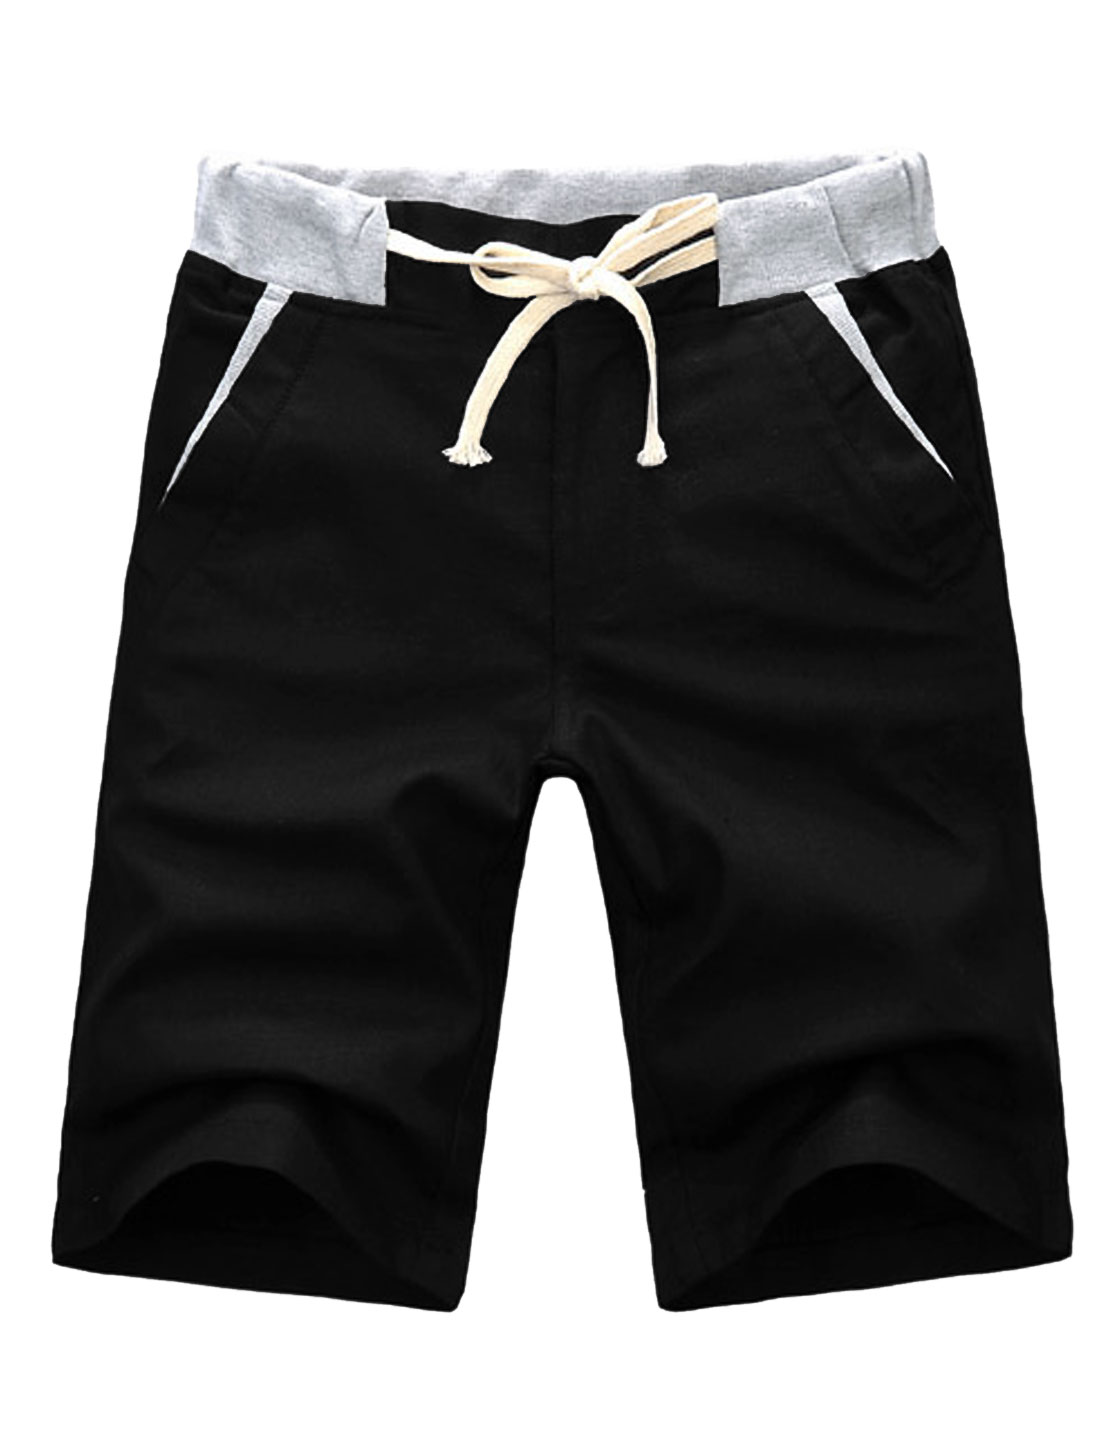 Men Front Pockets Drawstring Waist Casual Short Shorts Black W34